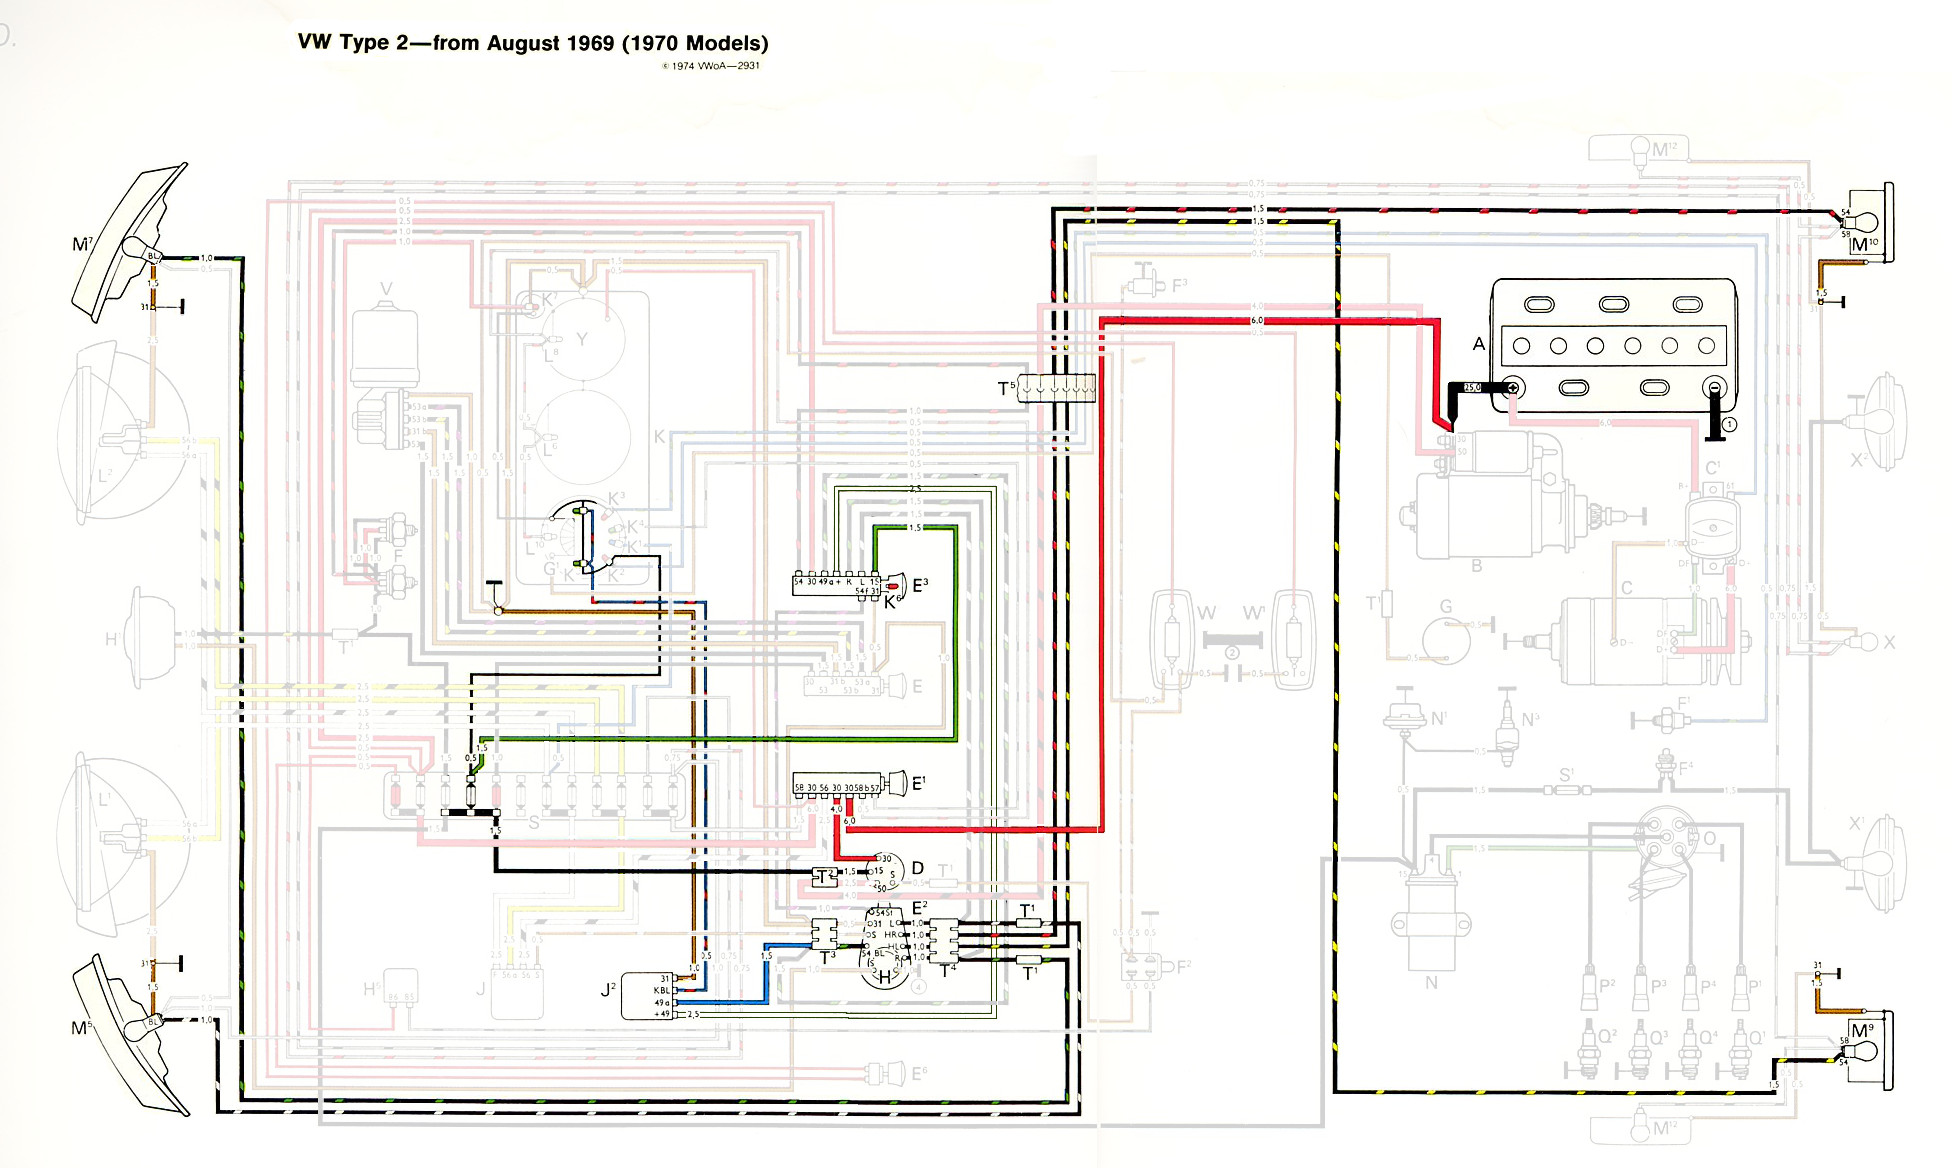 Type 2 Wiring Diagrams 65 Gto Turn Signal Diagram